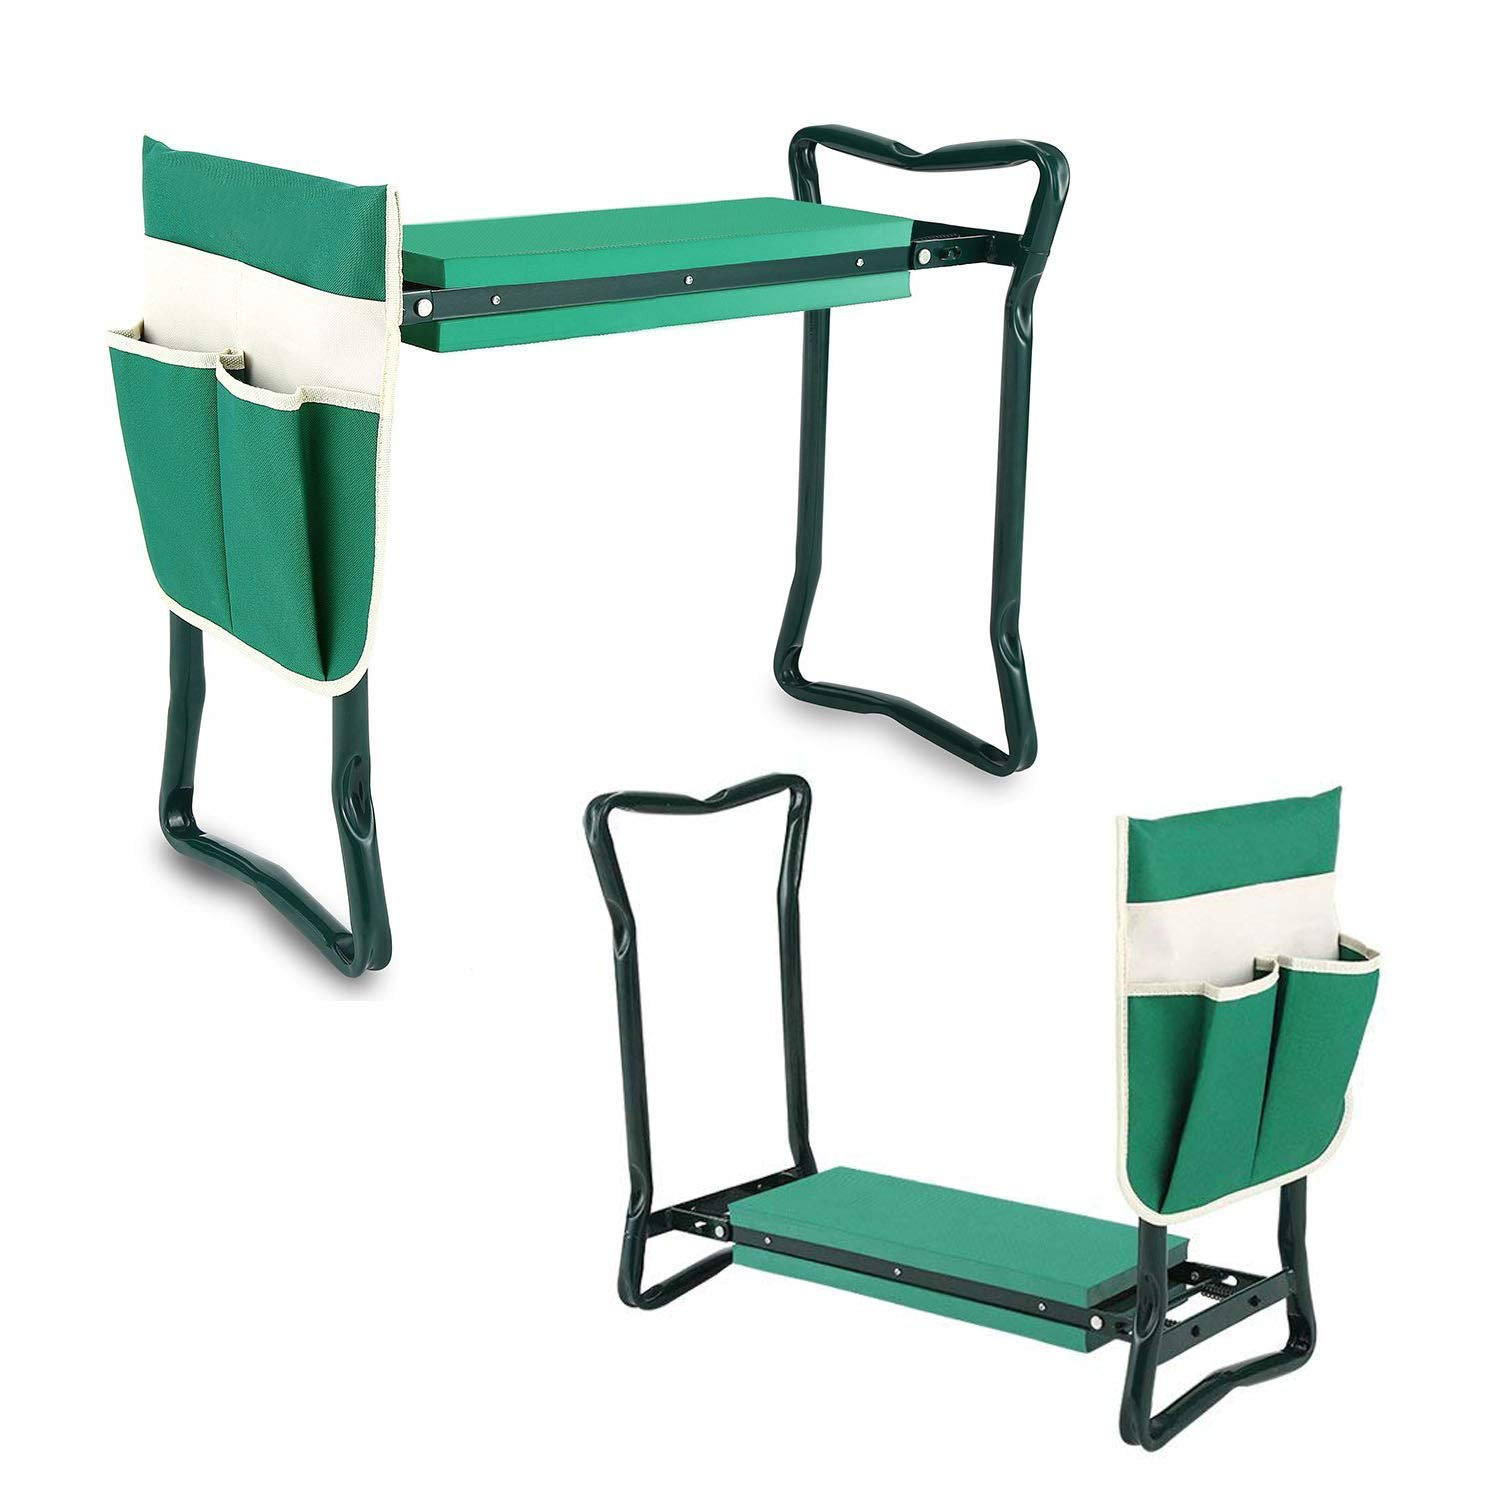 TREE.NB Garden Kneeler and Seat with 2 Bonus Tool Pouches